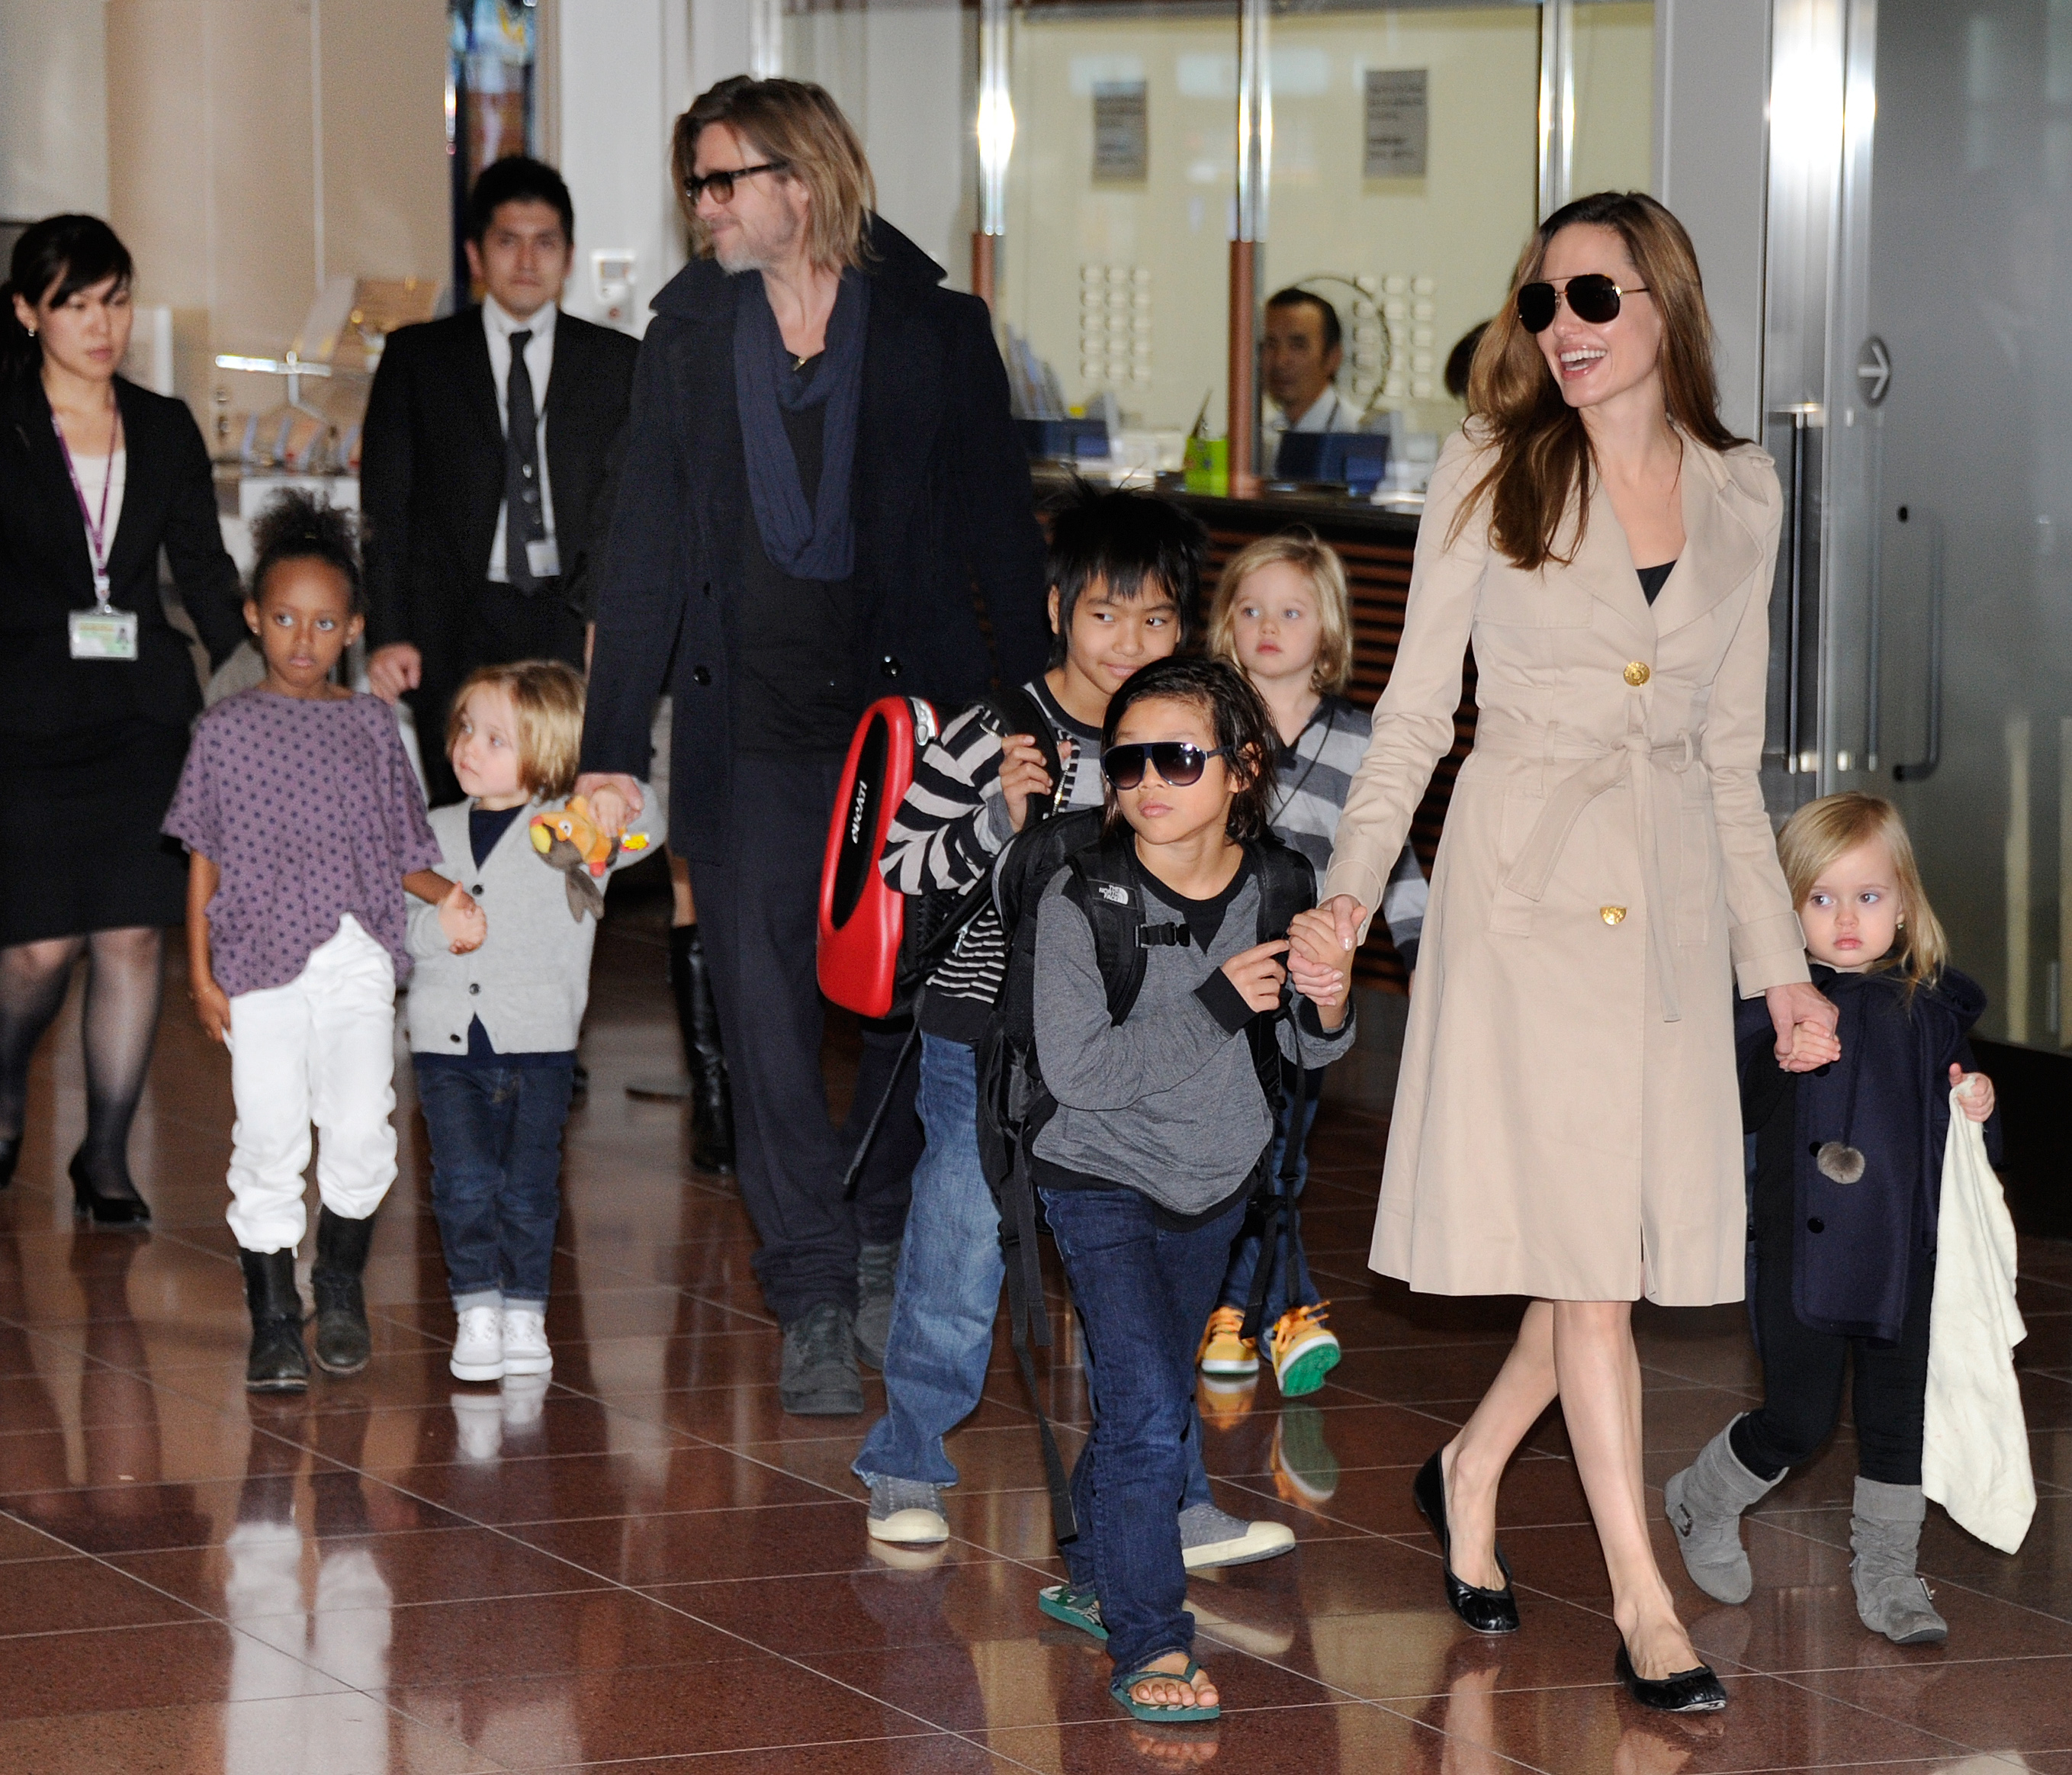 Maddox Jolie-Pitt refuses to see Brad Pitt after split